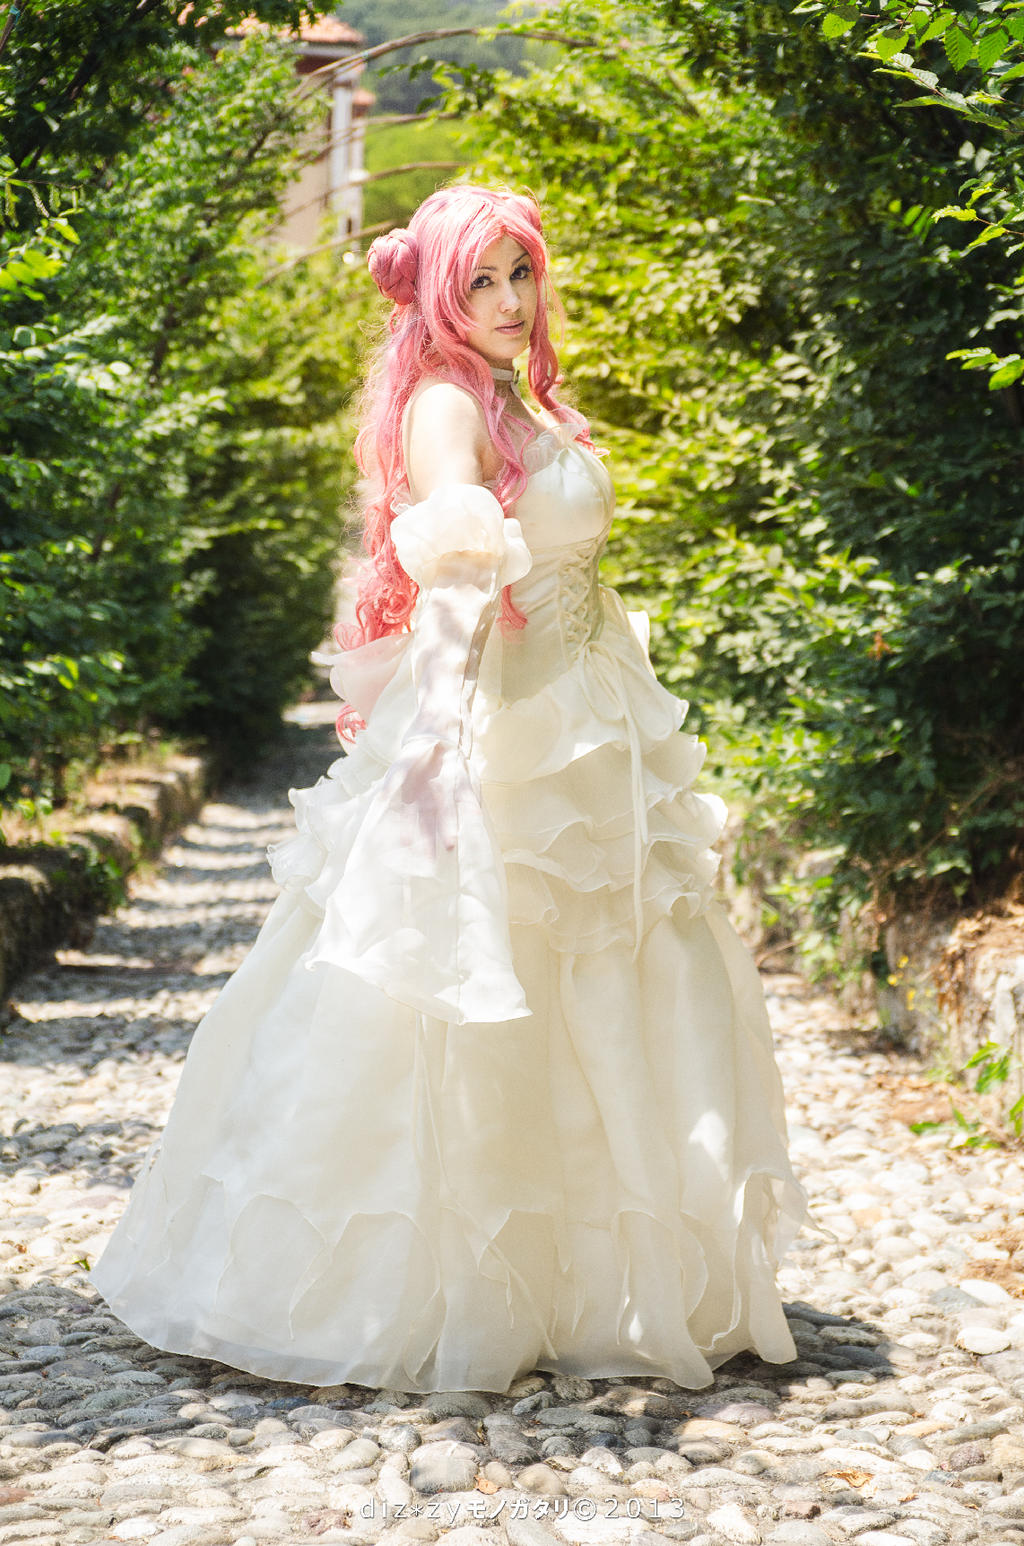 Come with me. Euphemia cosplay by Giuzzys